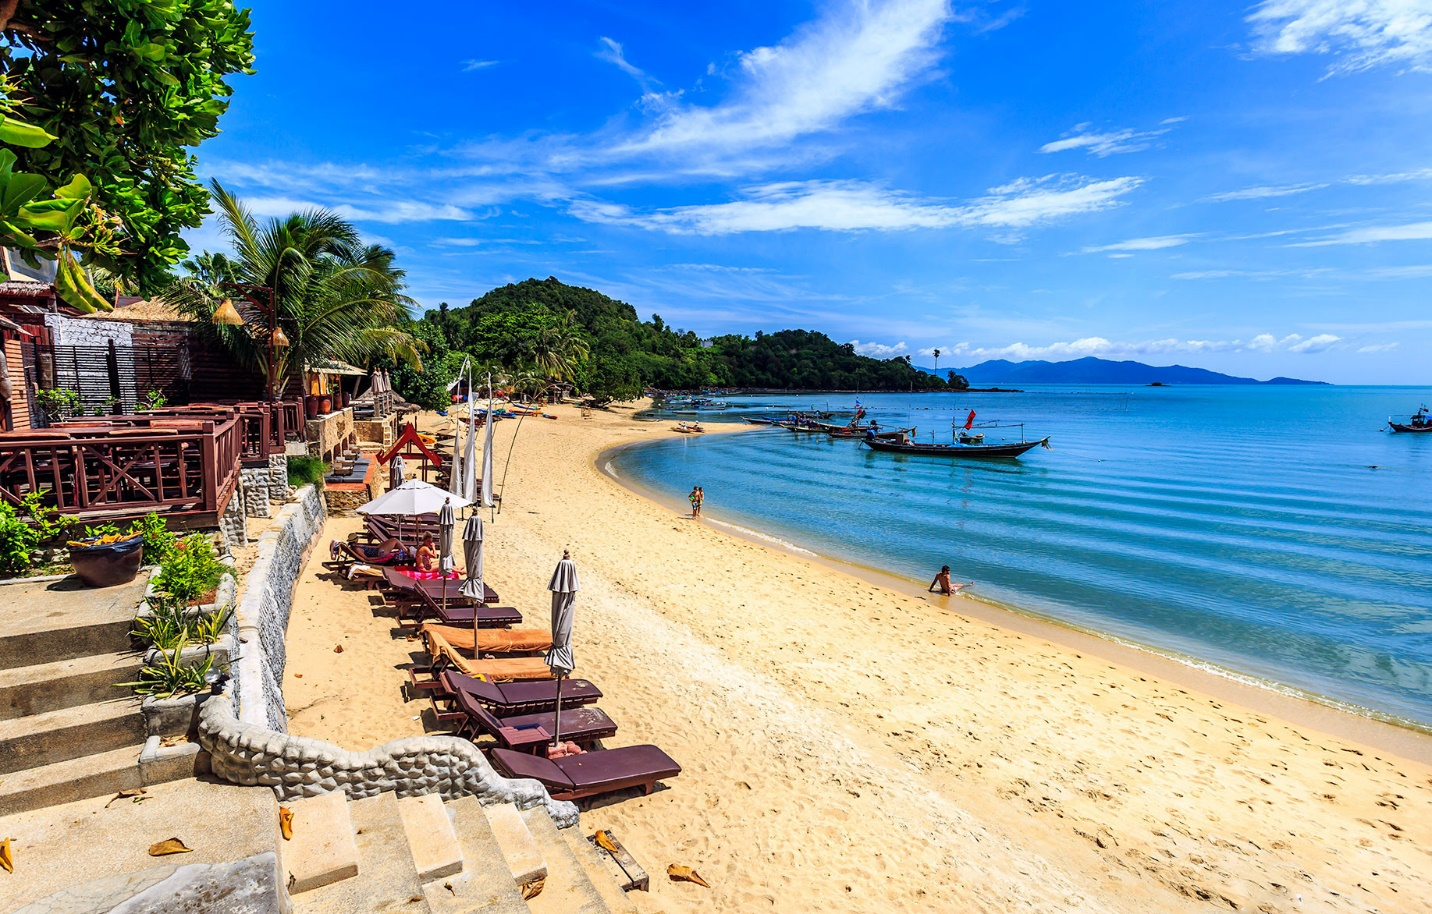 What budget do you need to travel and stay in Koh Samui